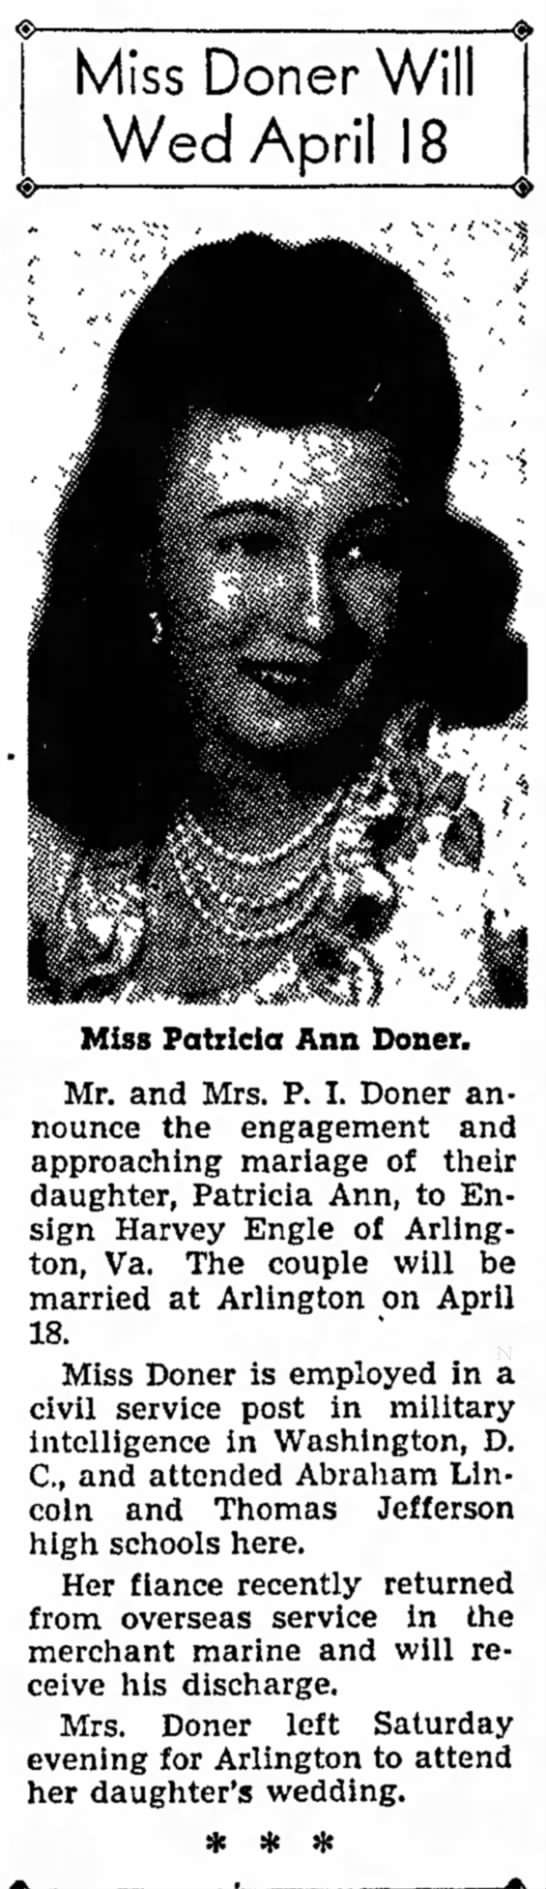 Miss Doner Will Wed April 18 - Council Bluffs Nonpareil - 14 Apr 1946, page 16 - R. a home B. Miss Doner Will Wed April 18 Miss...